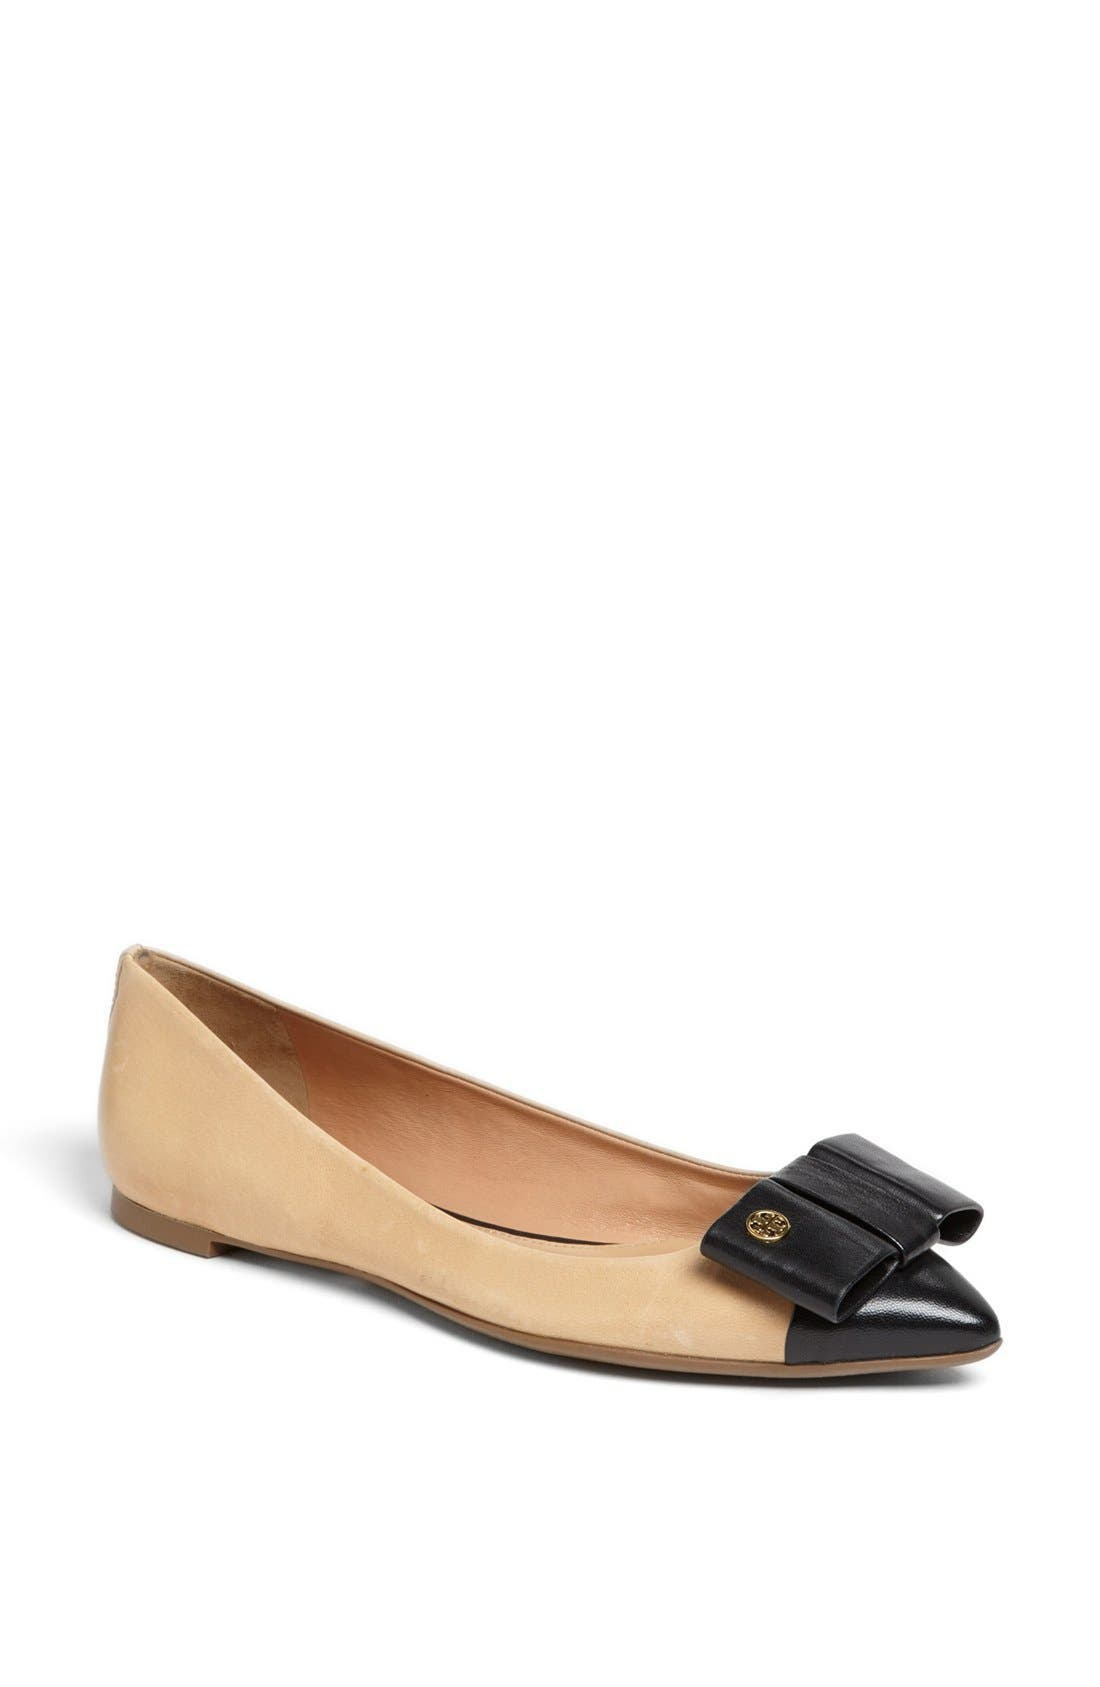 Alternate Image 1 Selected - Tory Burch 'Aimee' Flat (Online Only)